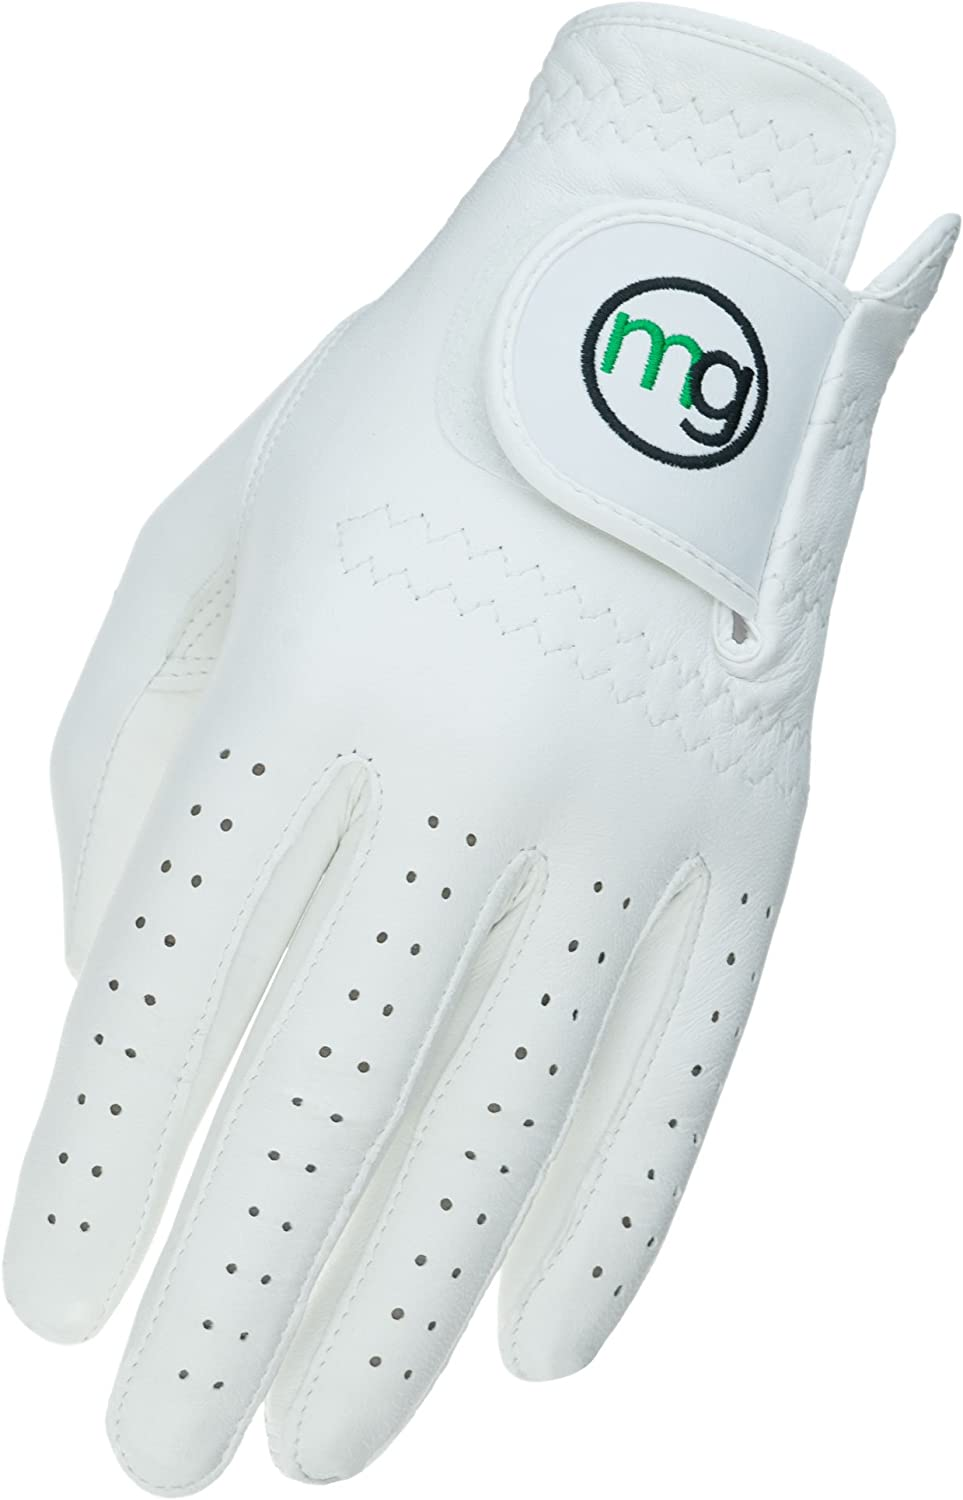 MG Golf Glove Mens DynaGrip All-Cabretta Leather (Regular Sizes)